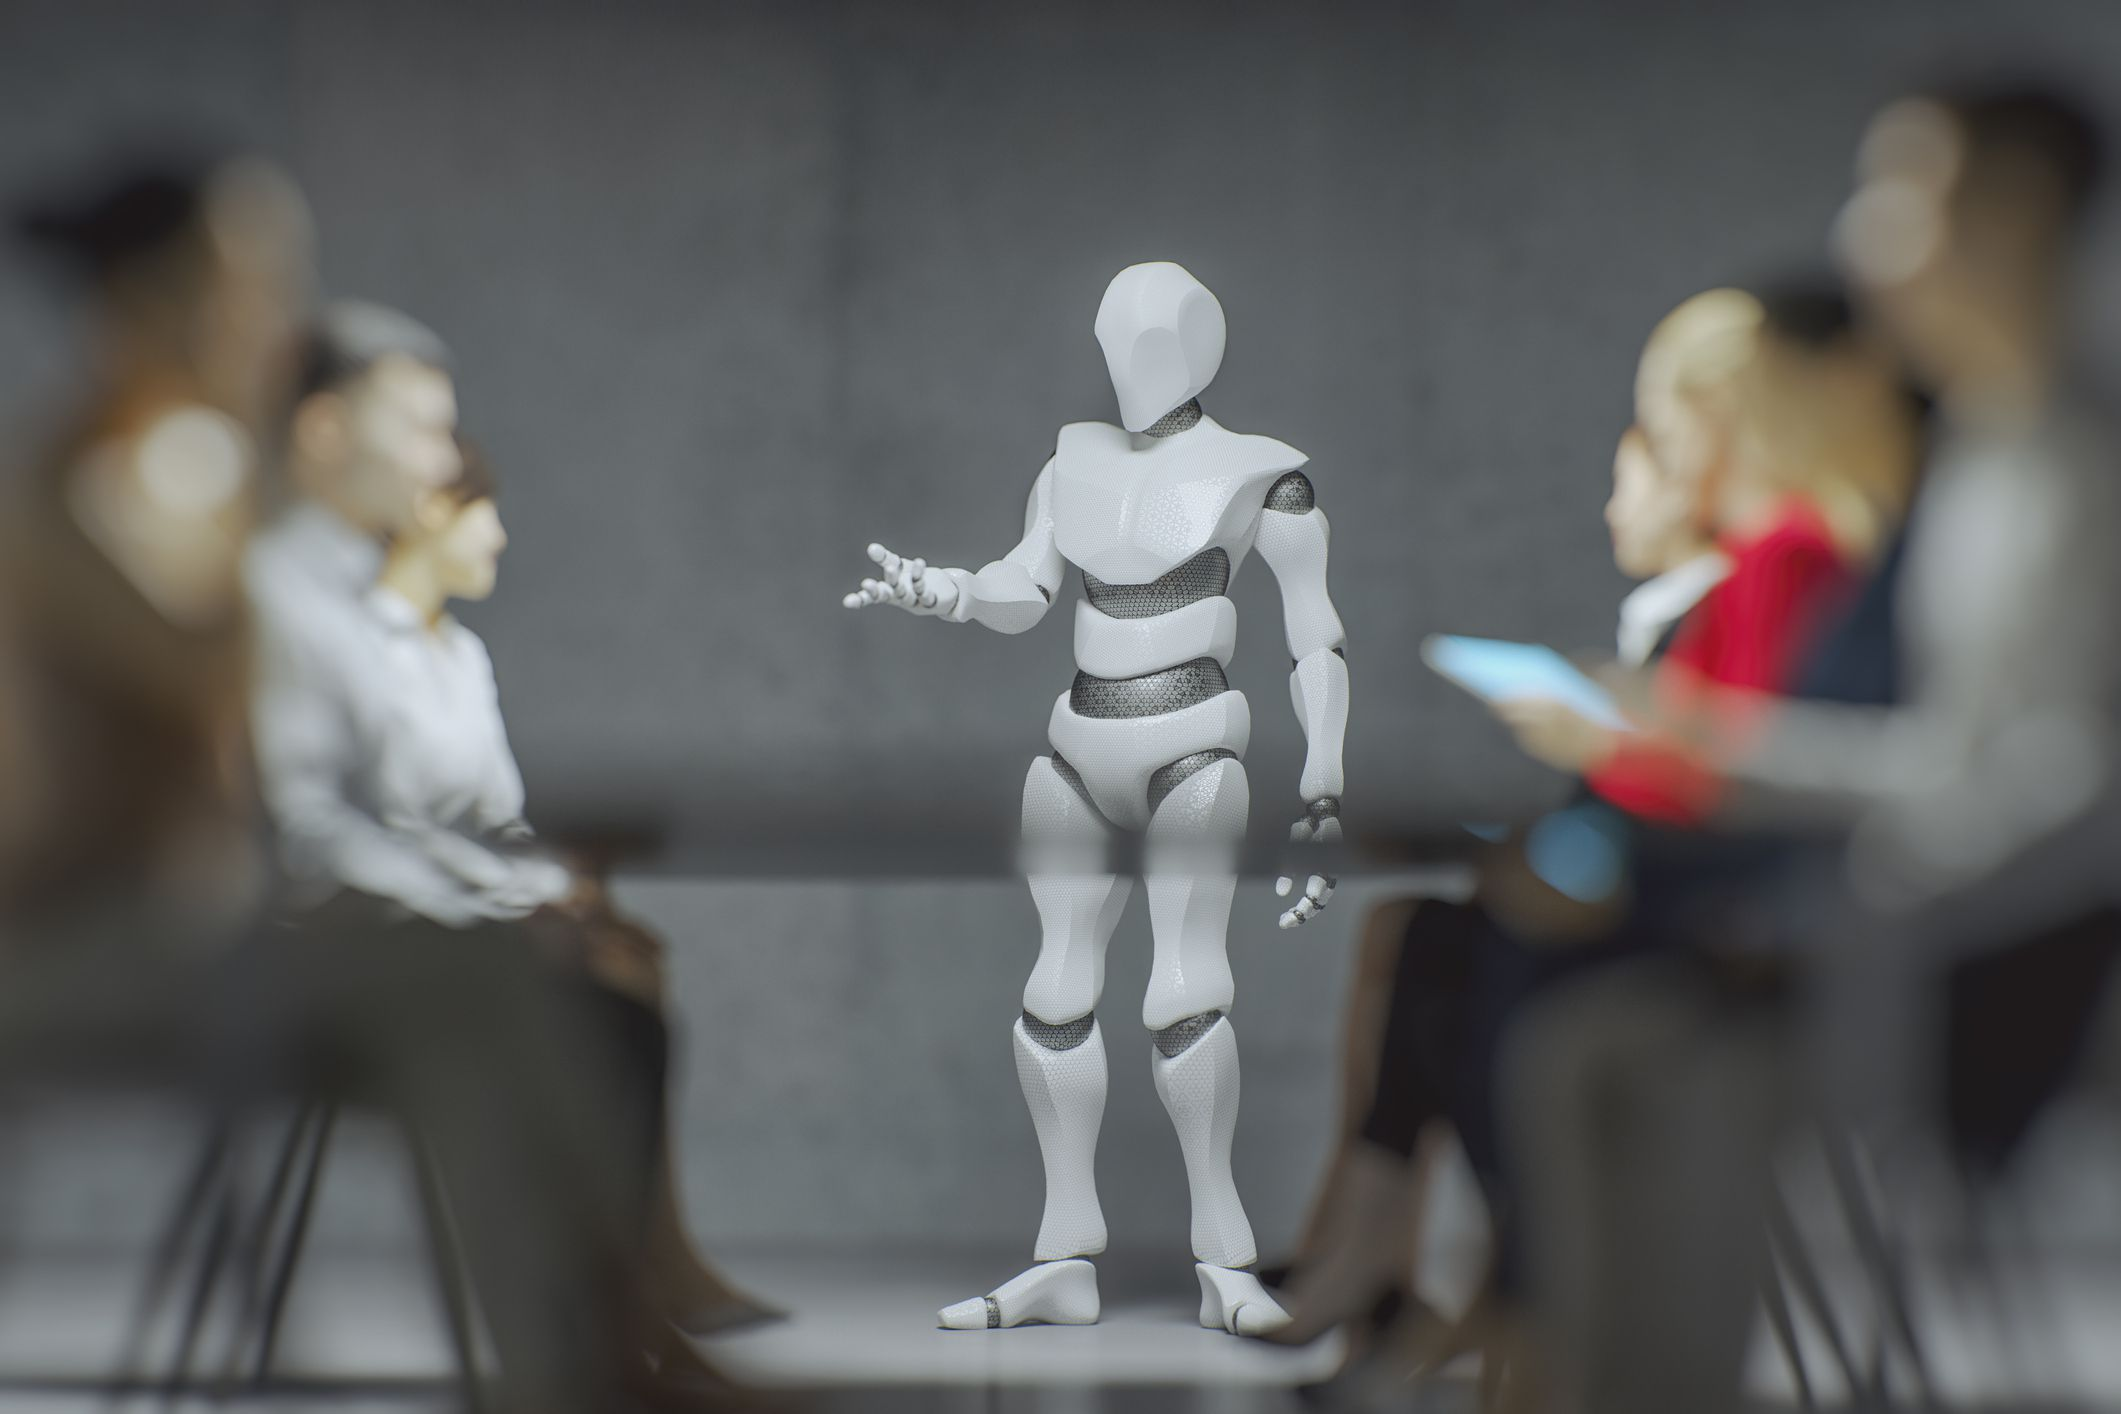 Humanoid robot talking to a group of people.